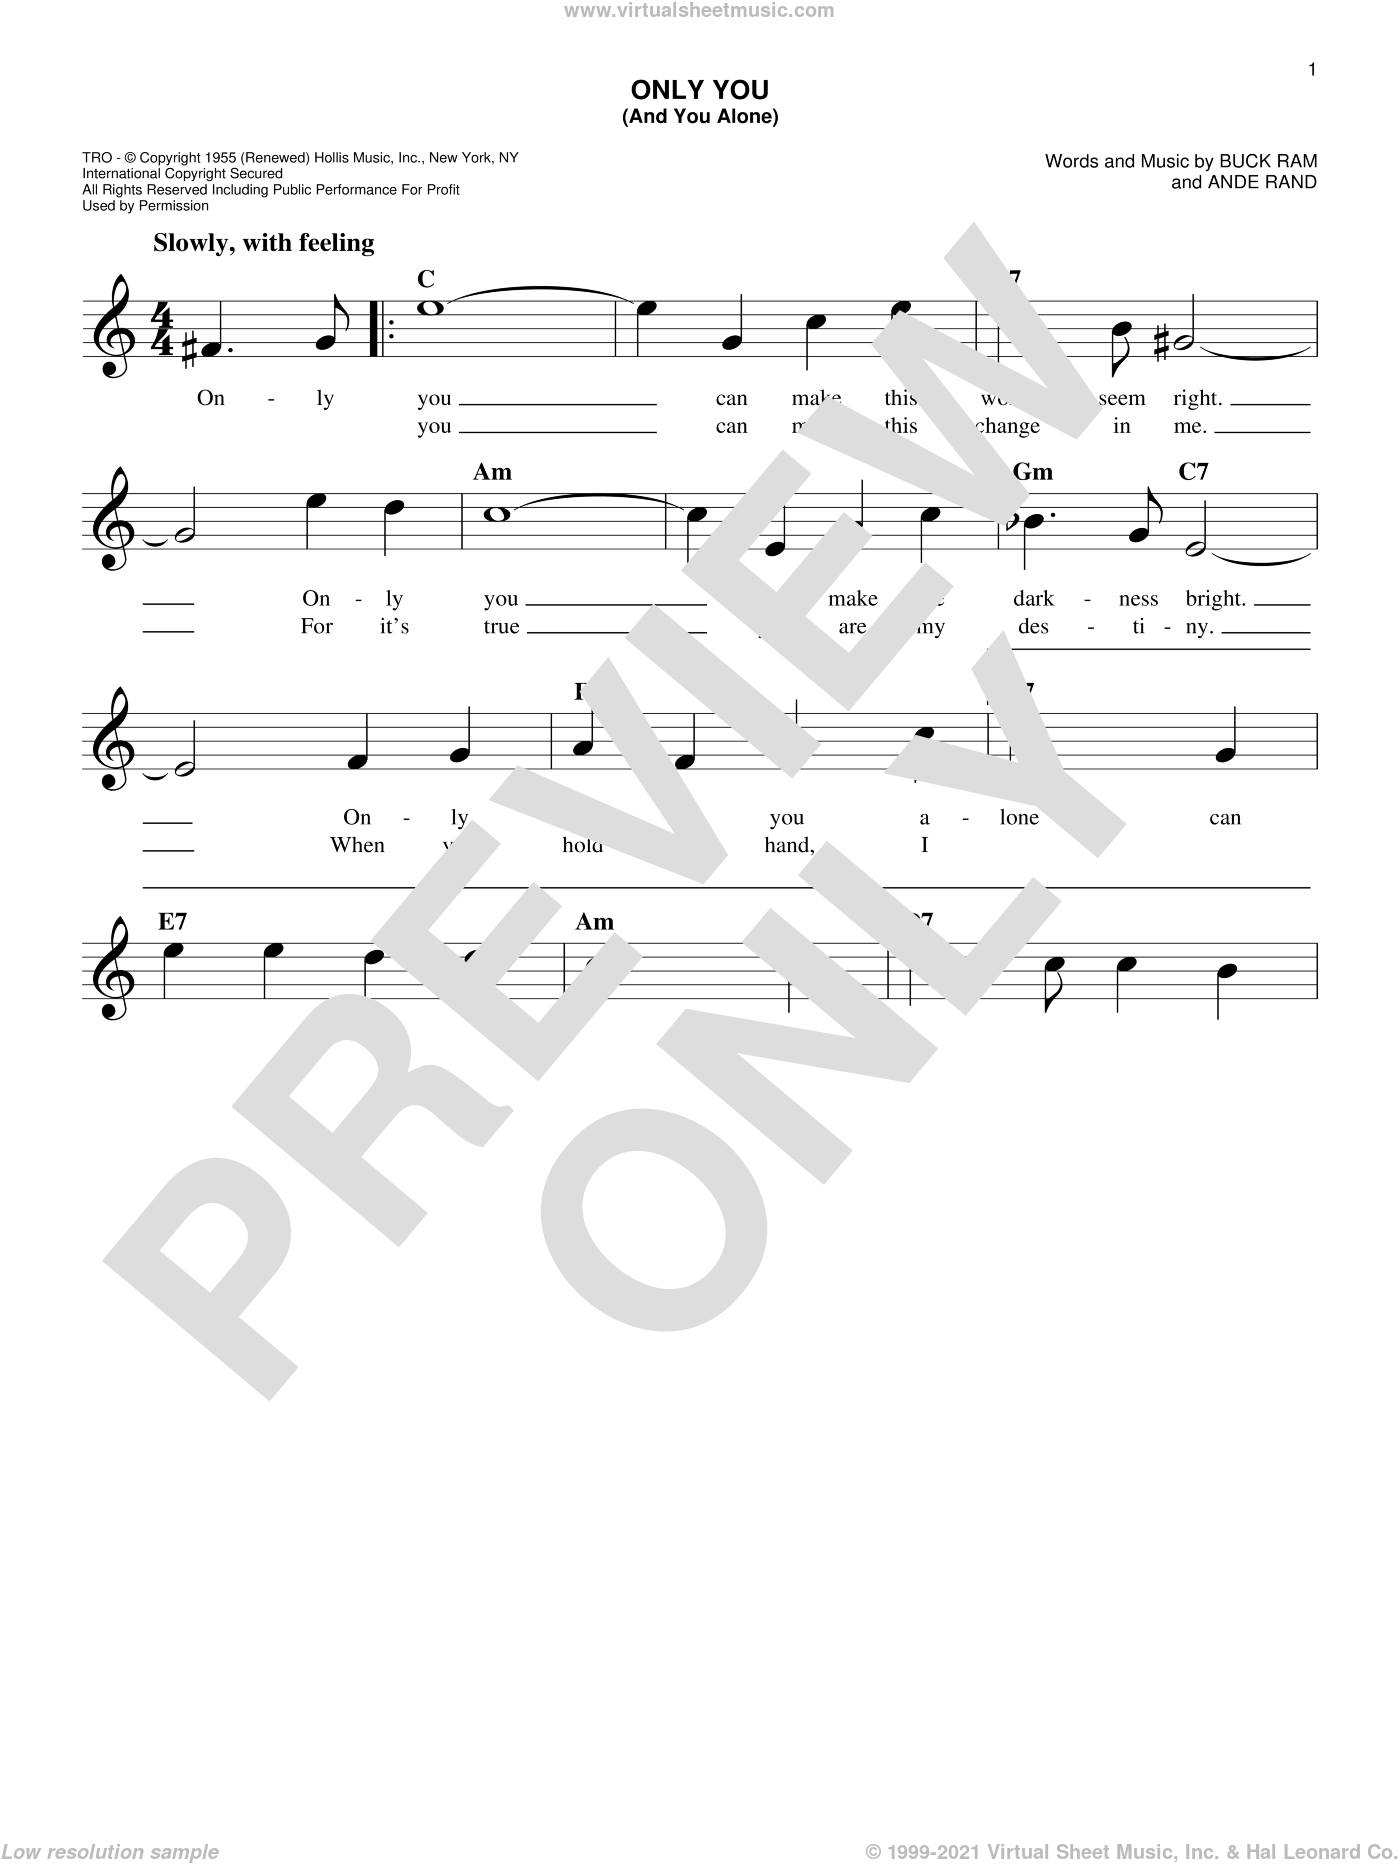 Only You (And You Alone) sheet music for voice and other instruments (fake book) by The Platters, Ande Rand and Buck Ram, wedding score, intermediate skill level